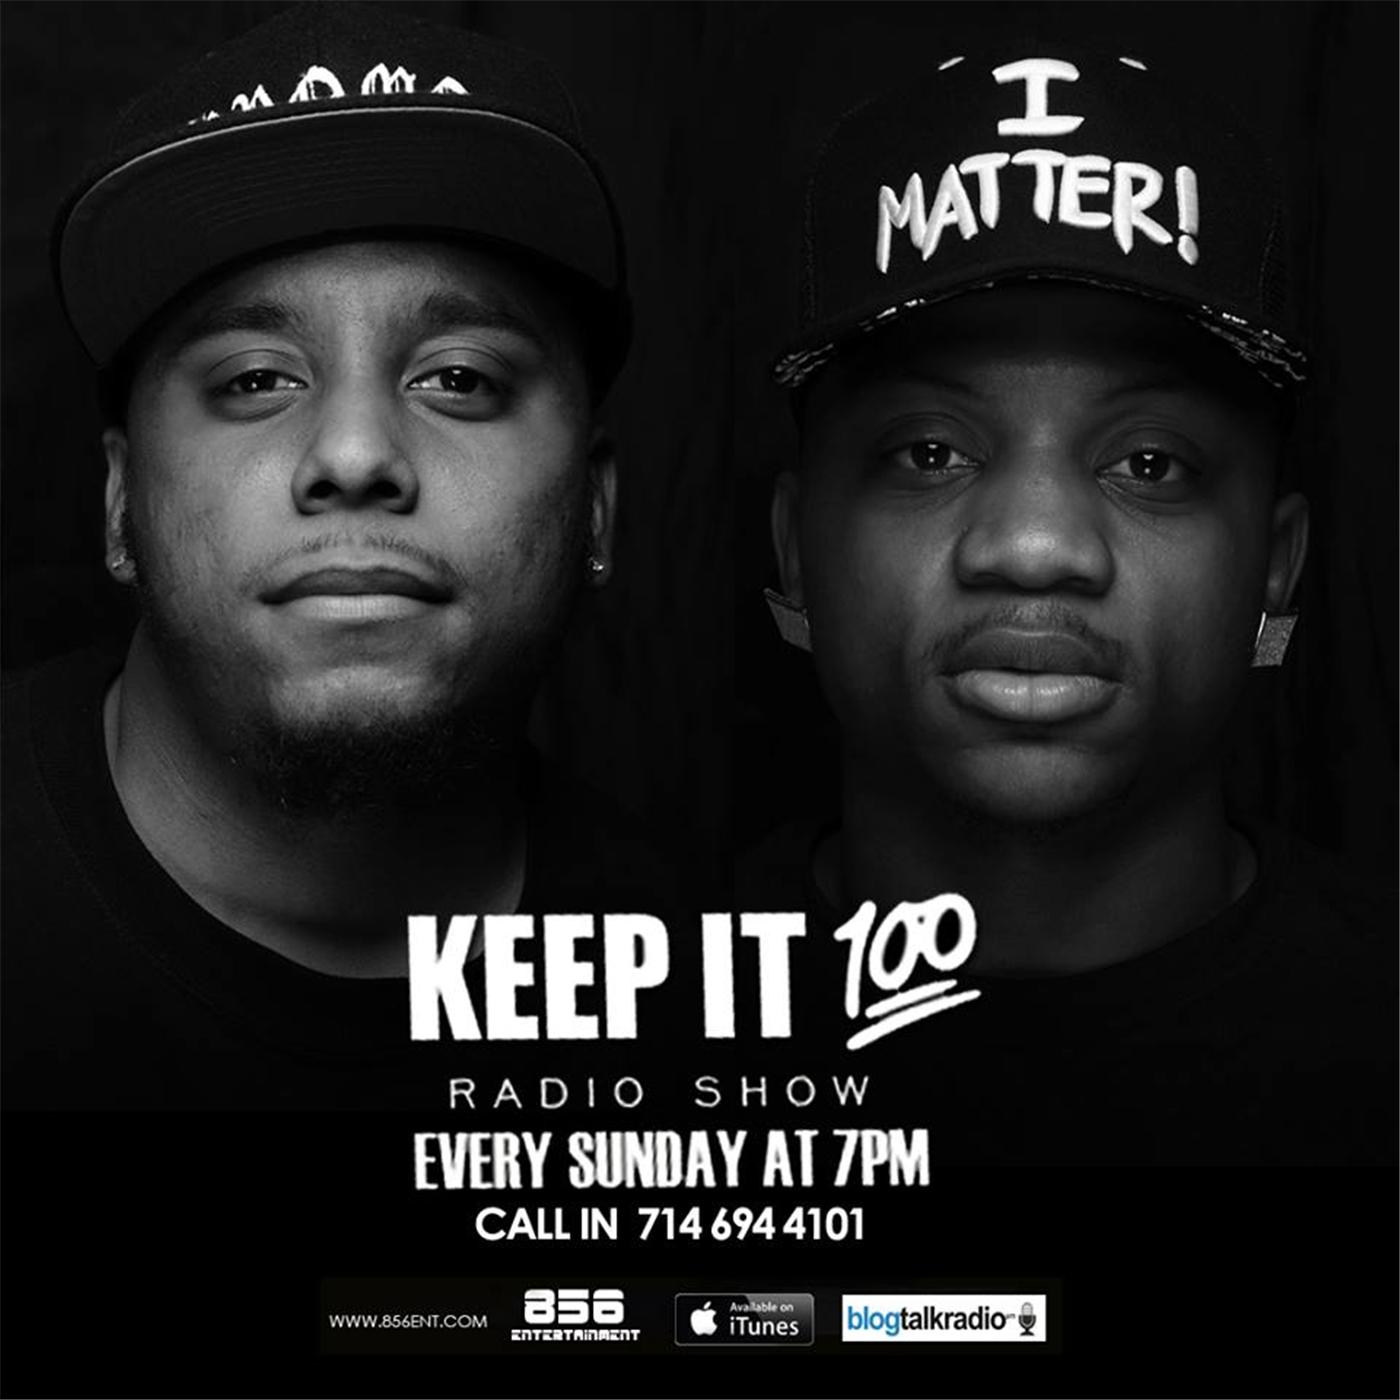 Keep It 100 Radio Show